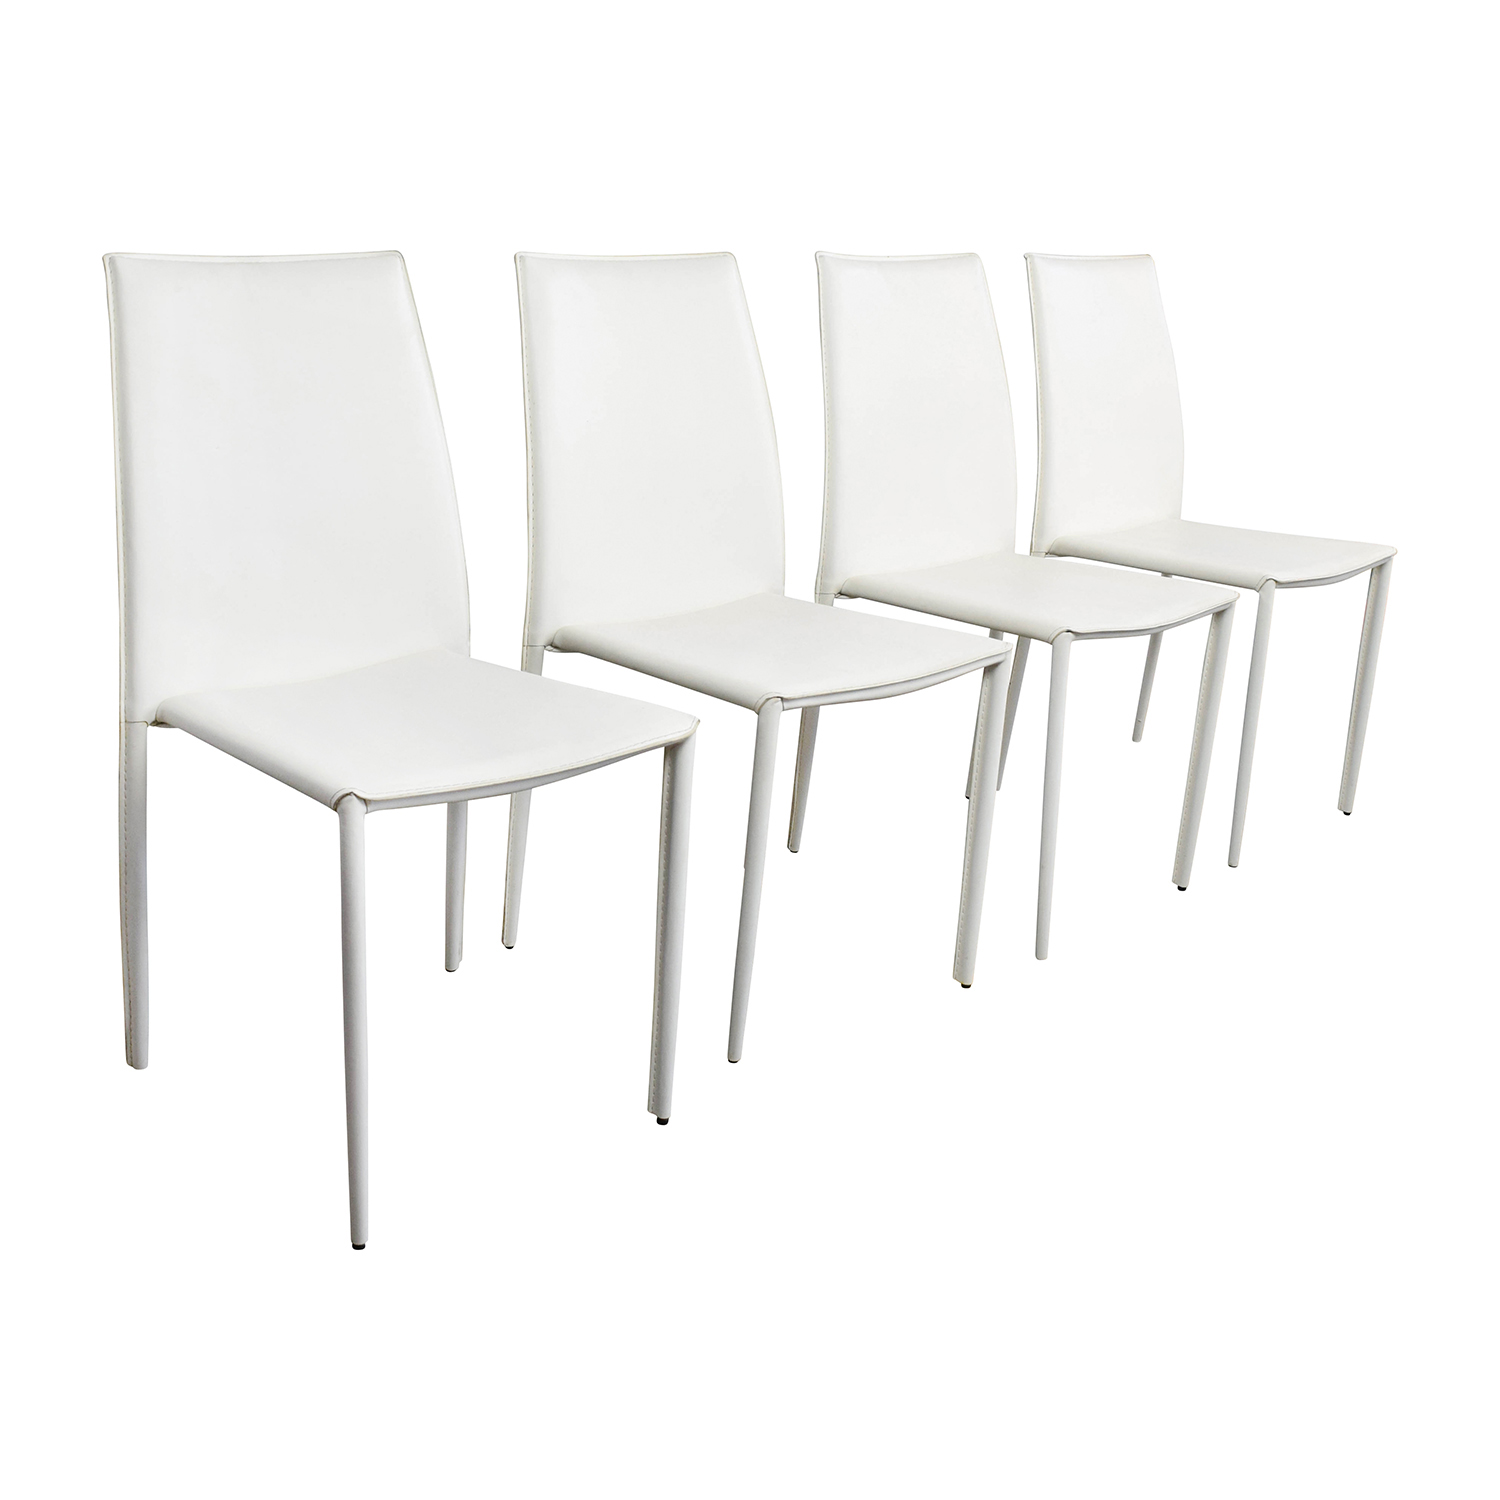 all modern white leather dining chairs  dining chairs .  off  all modern all modern white leather dining chairs  chairs